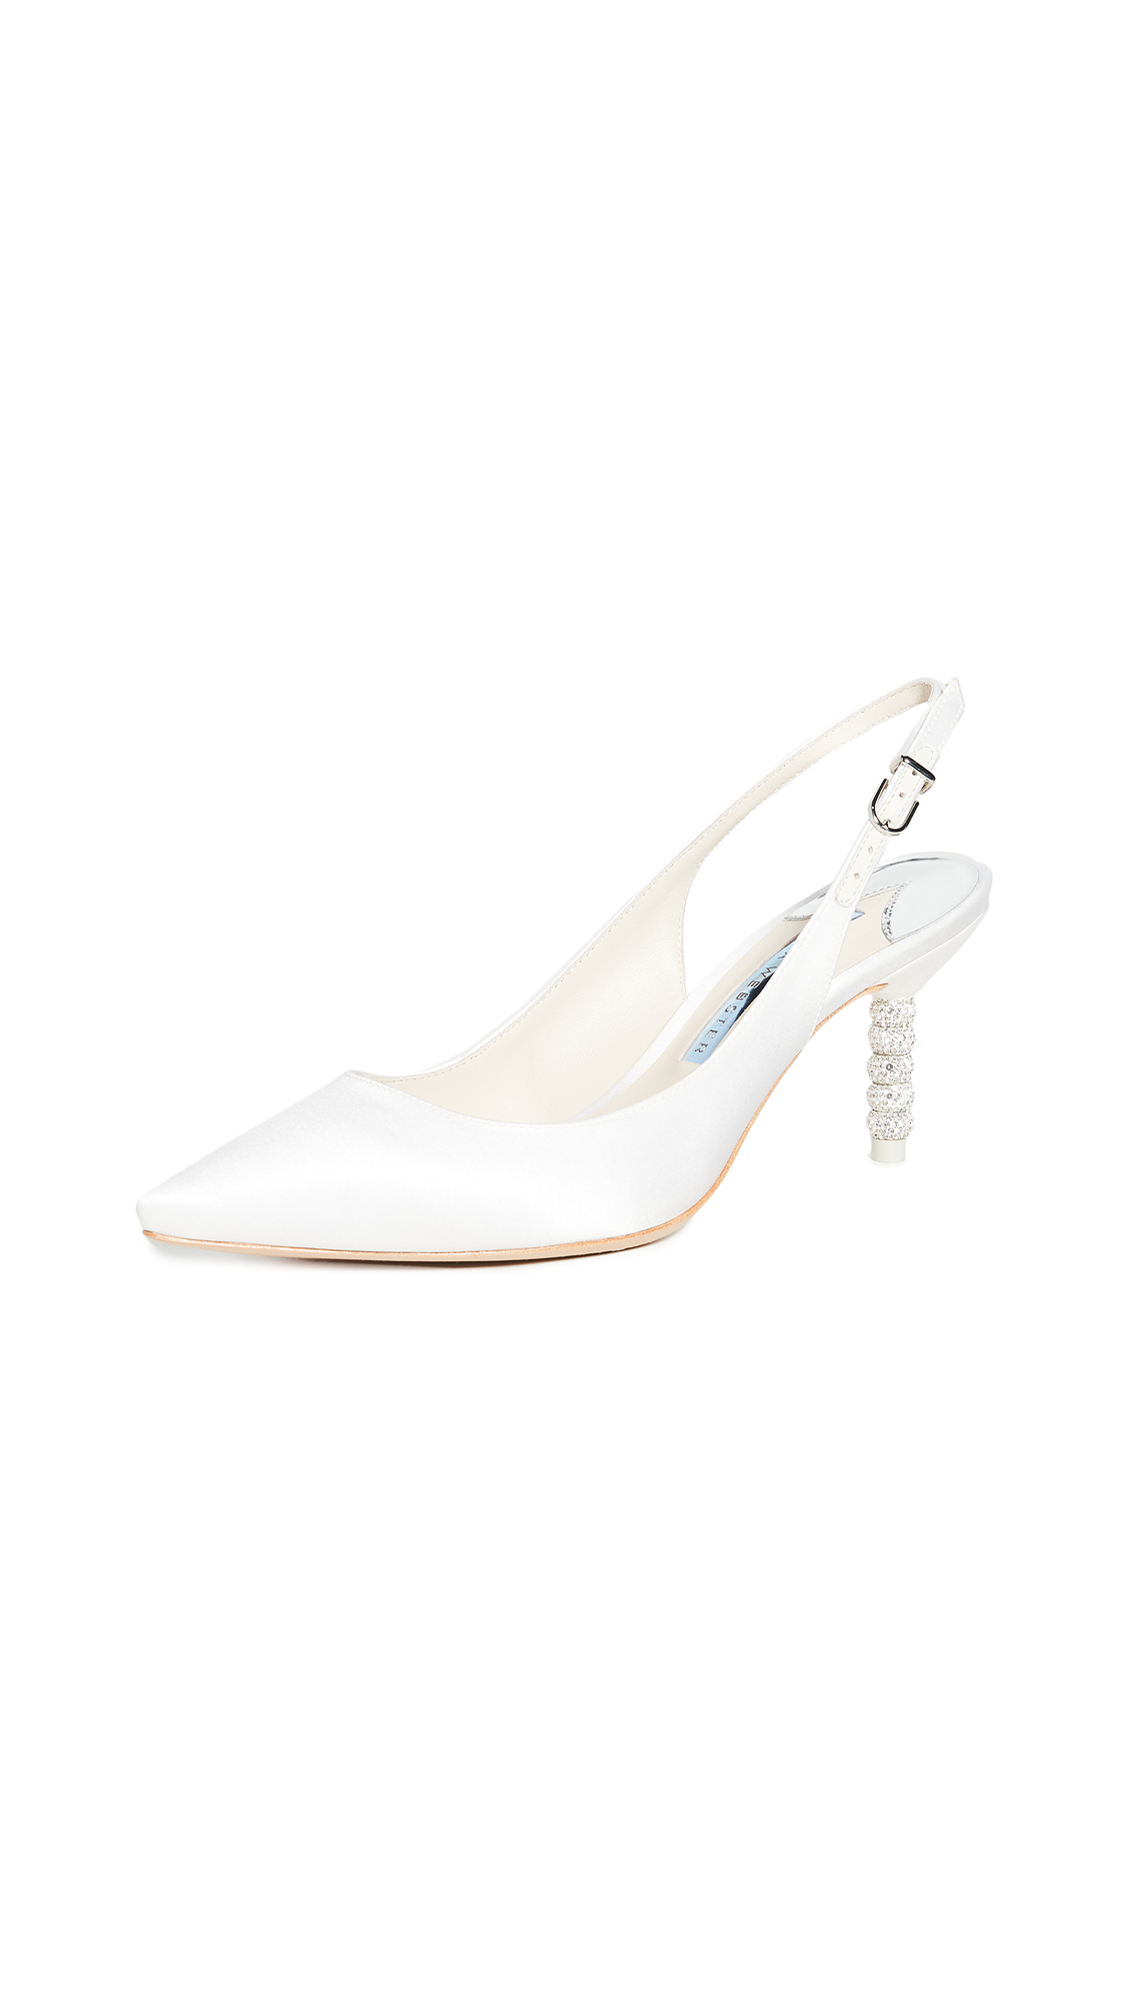 Sophia Webster Tyra Slingback Pumps - 30% Off Sale